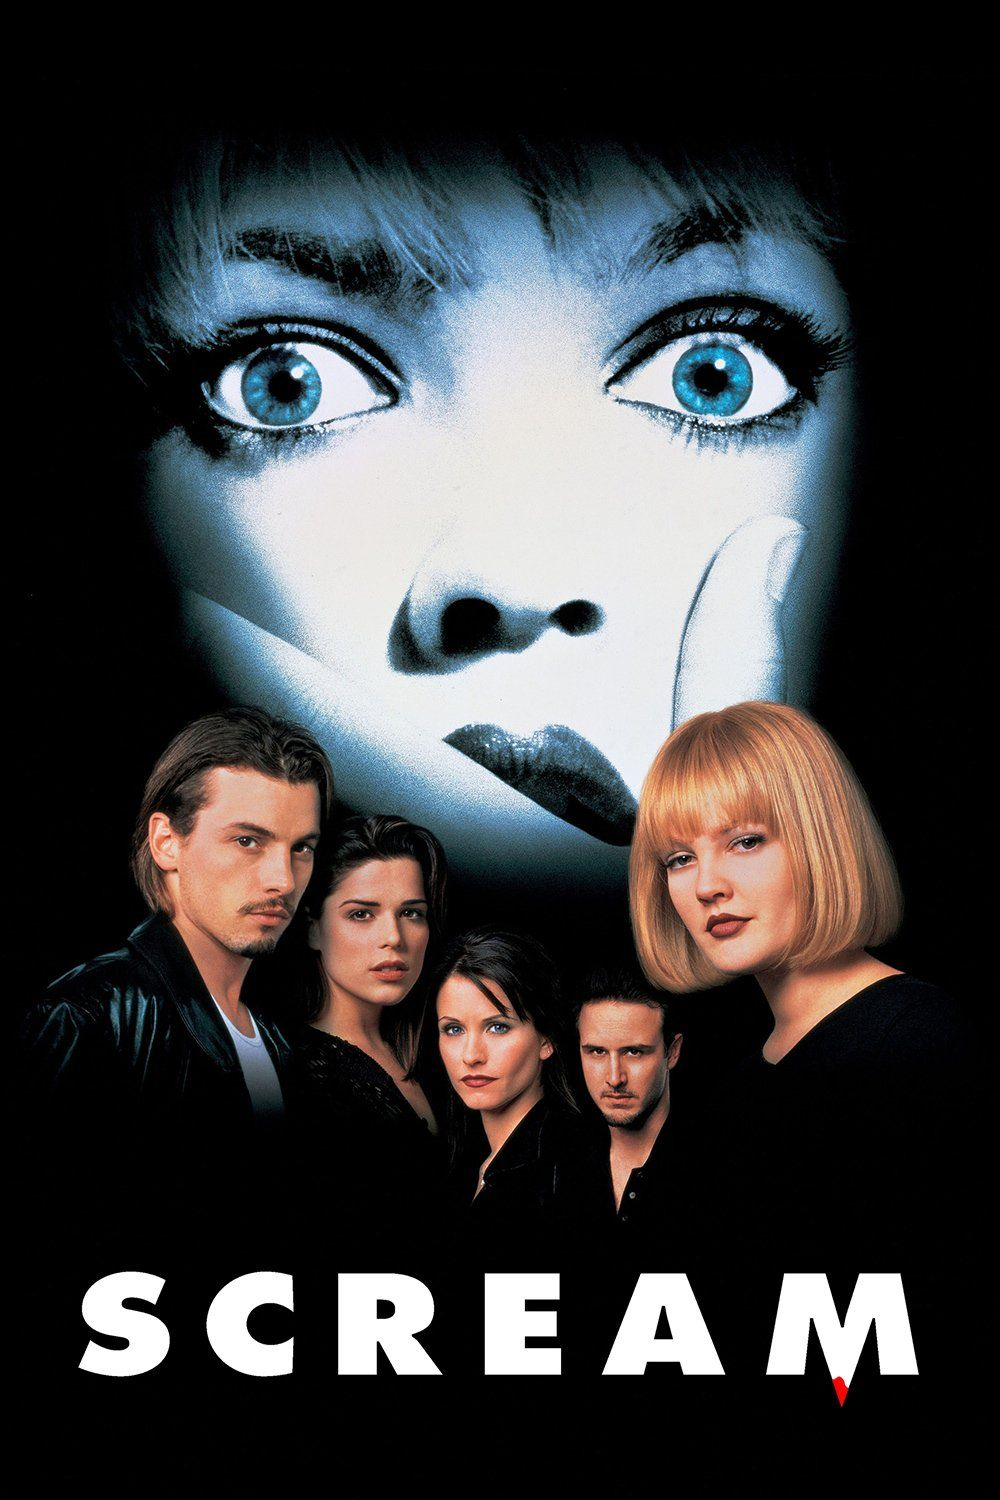 Scream (1996) Movie Review | Pôsteres de filmes, Filmes de terror, Filme  panico